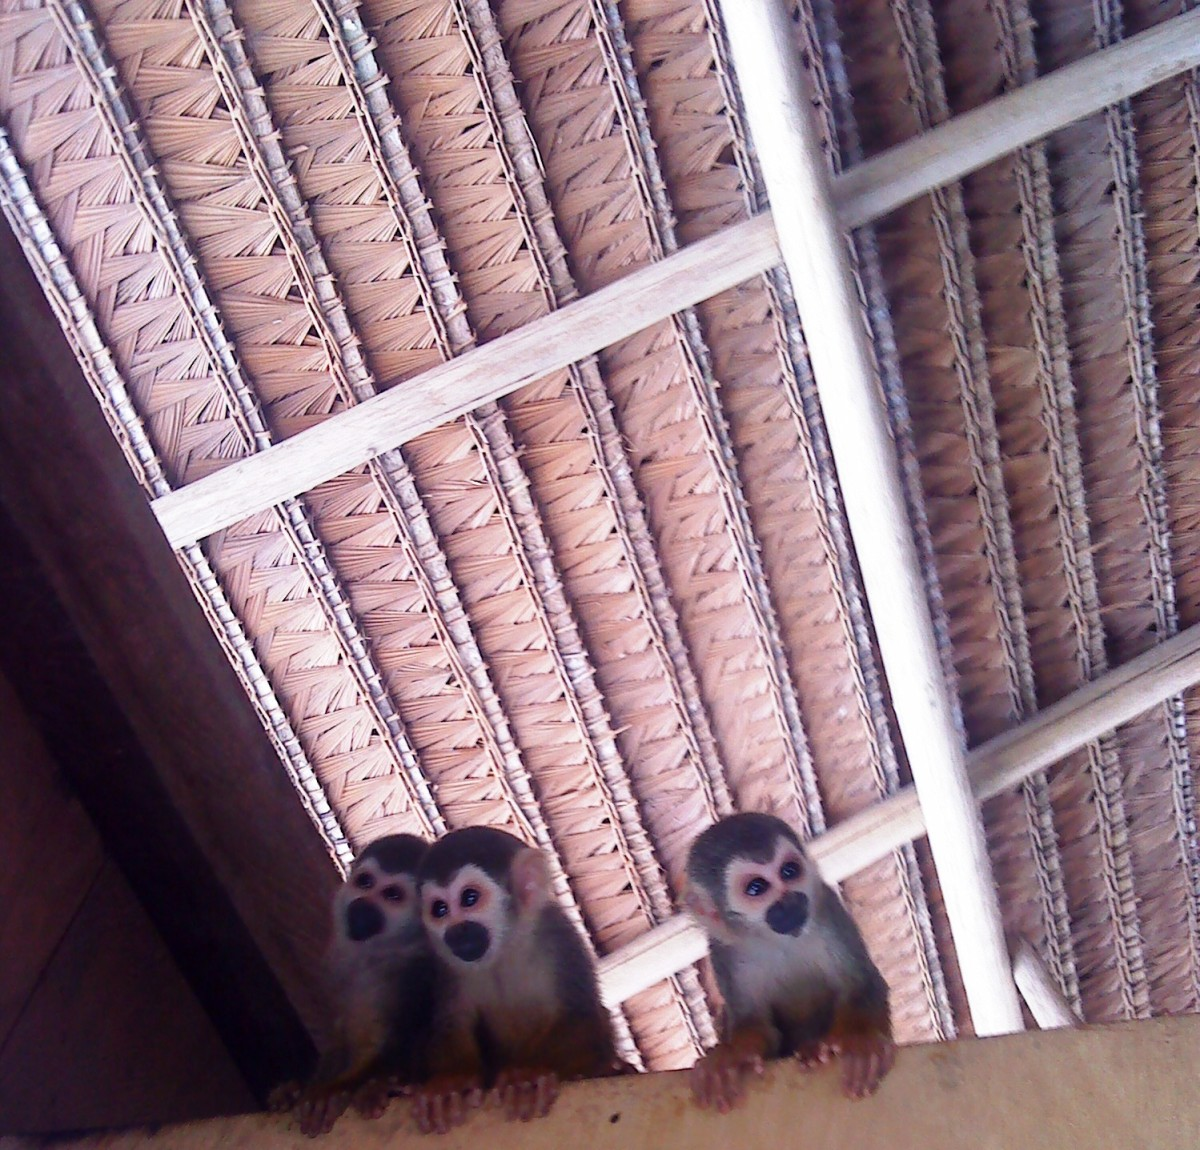 3 squirrel monkeys.